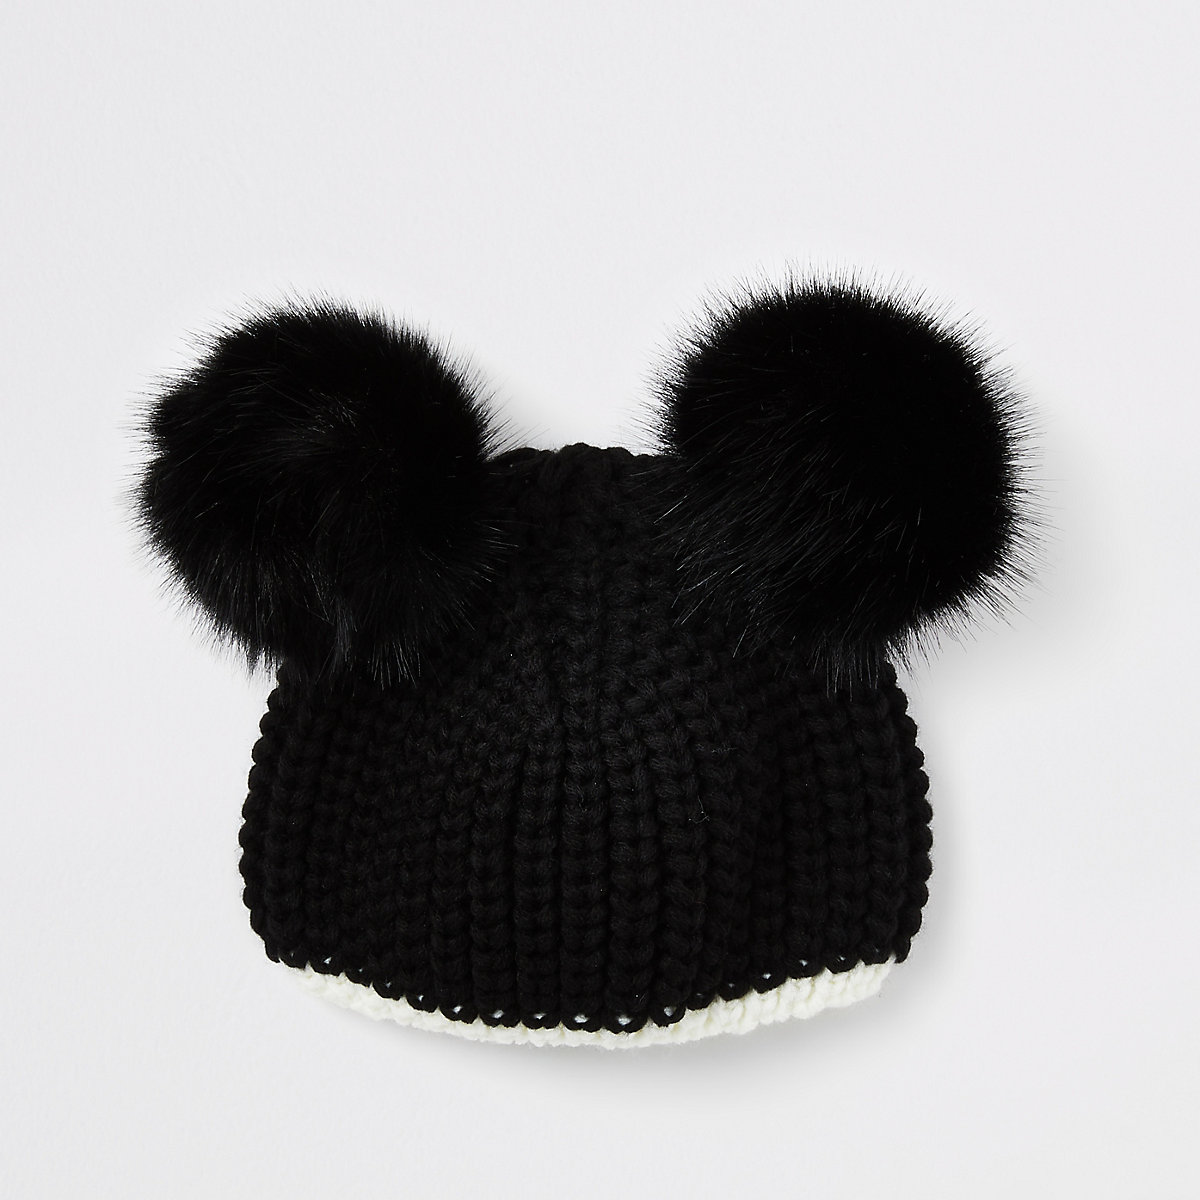 Girls black knit pom pom beanie hat